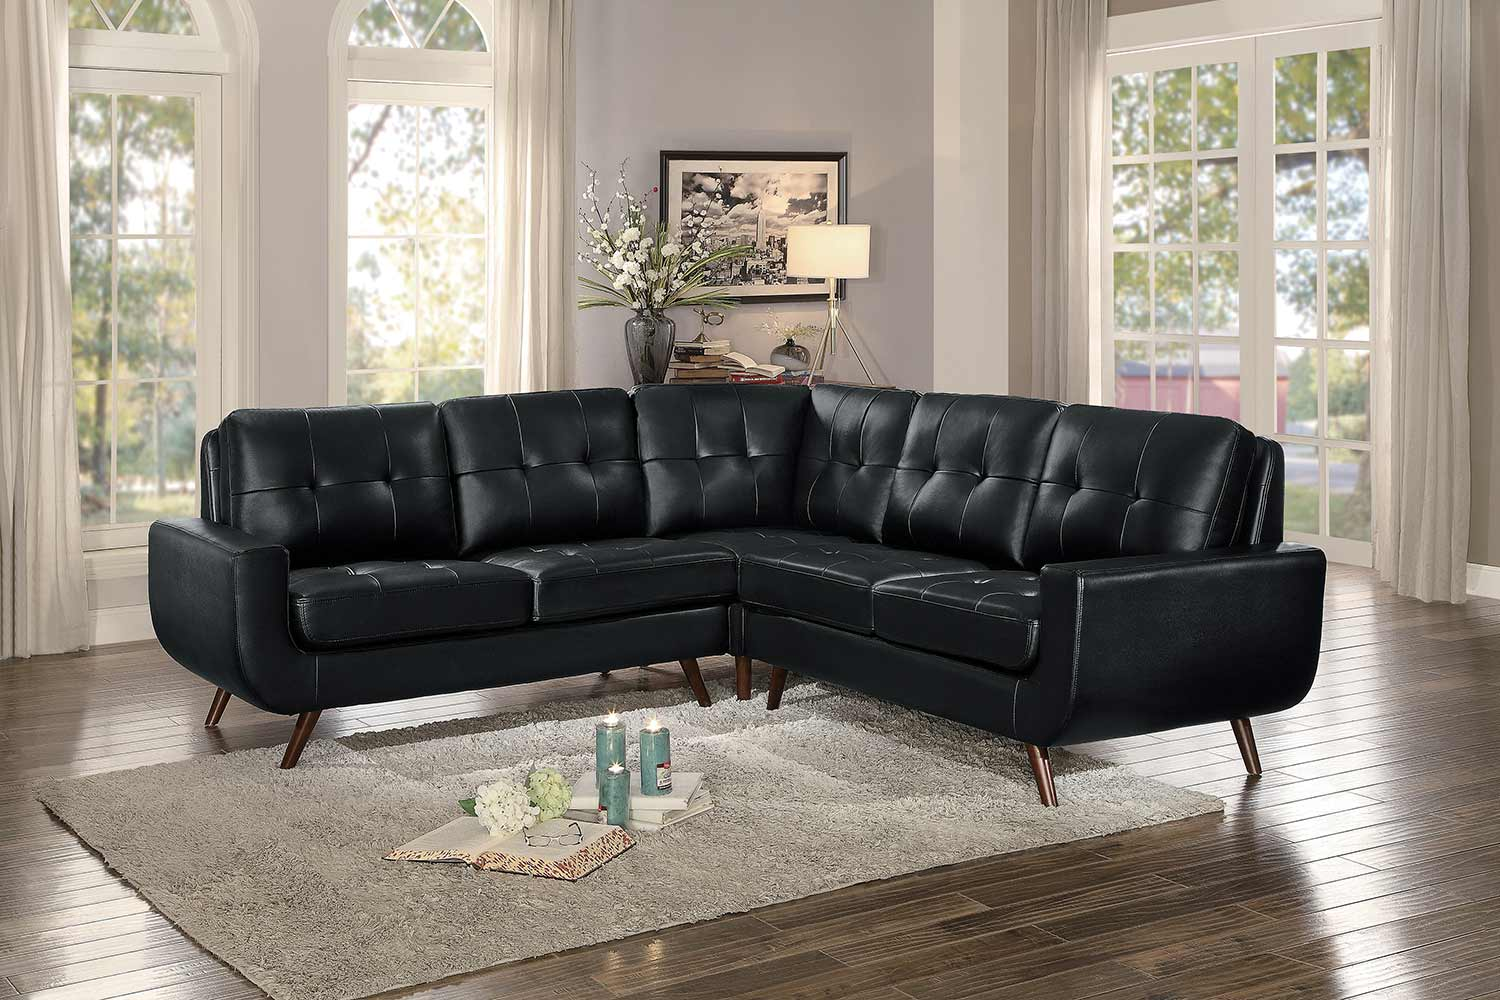 Homelegance Deryn Sectional Sofa - Black Leather Gel Match